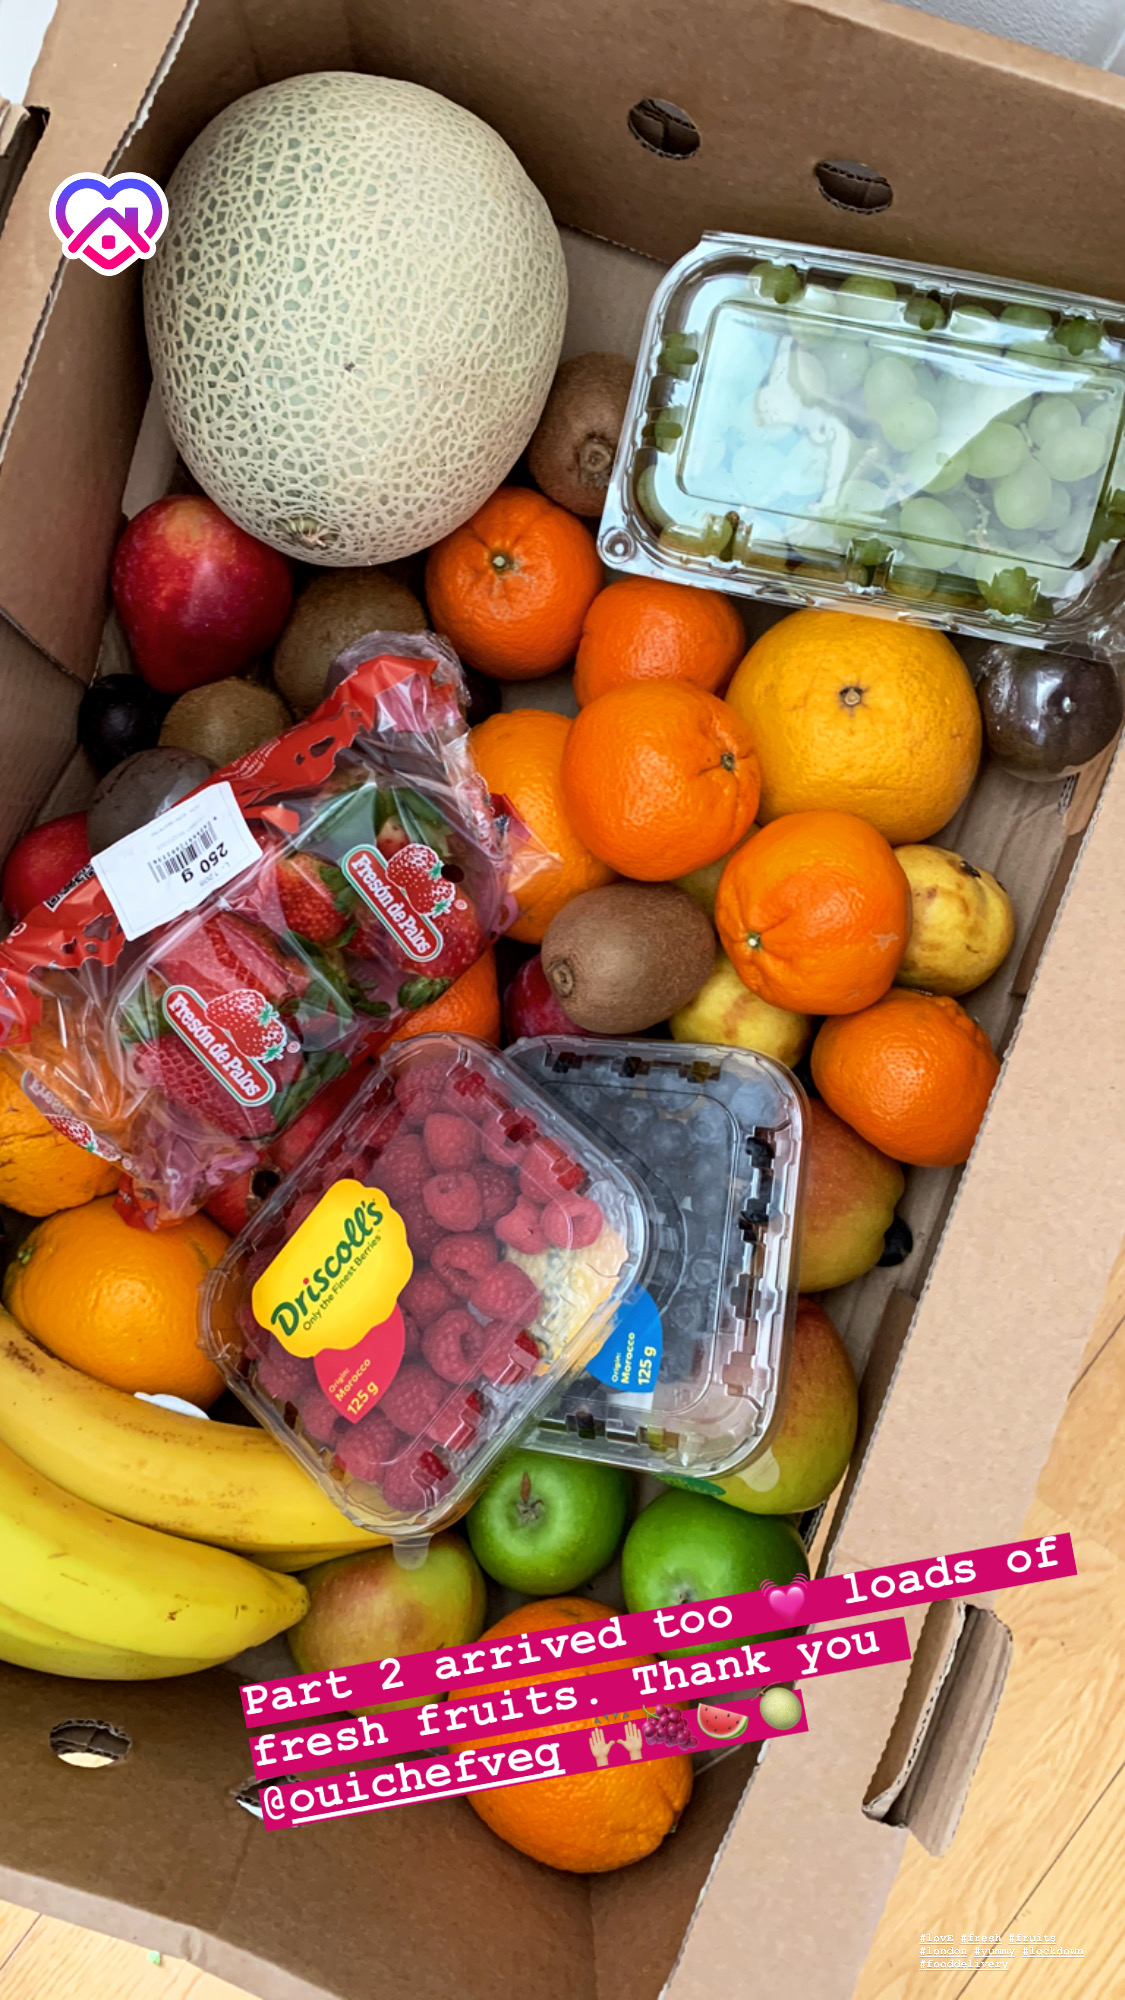 oui chef fruit delivery London